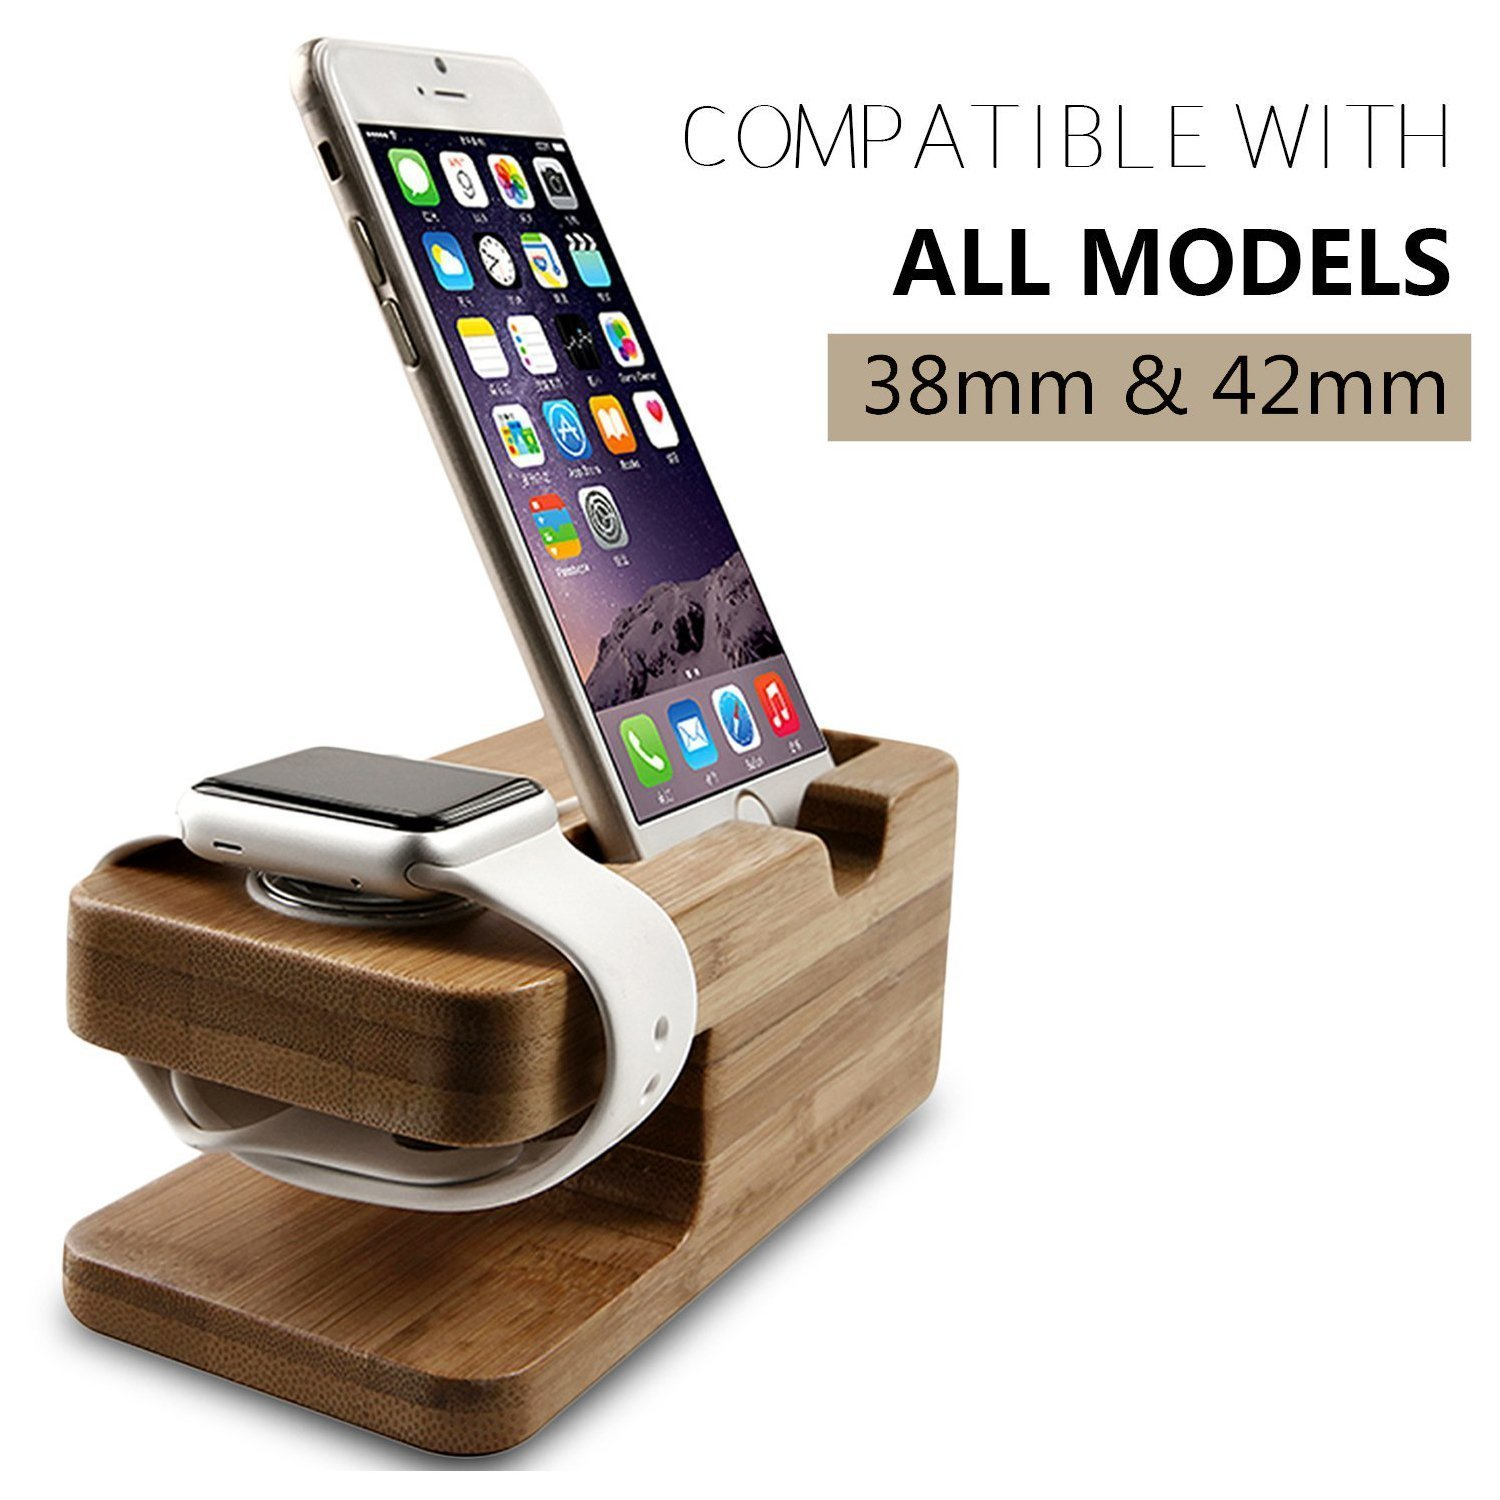 stand holder for pin com dock iphone charging in station desk wooden wood amazon bamboo